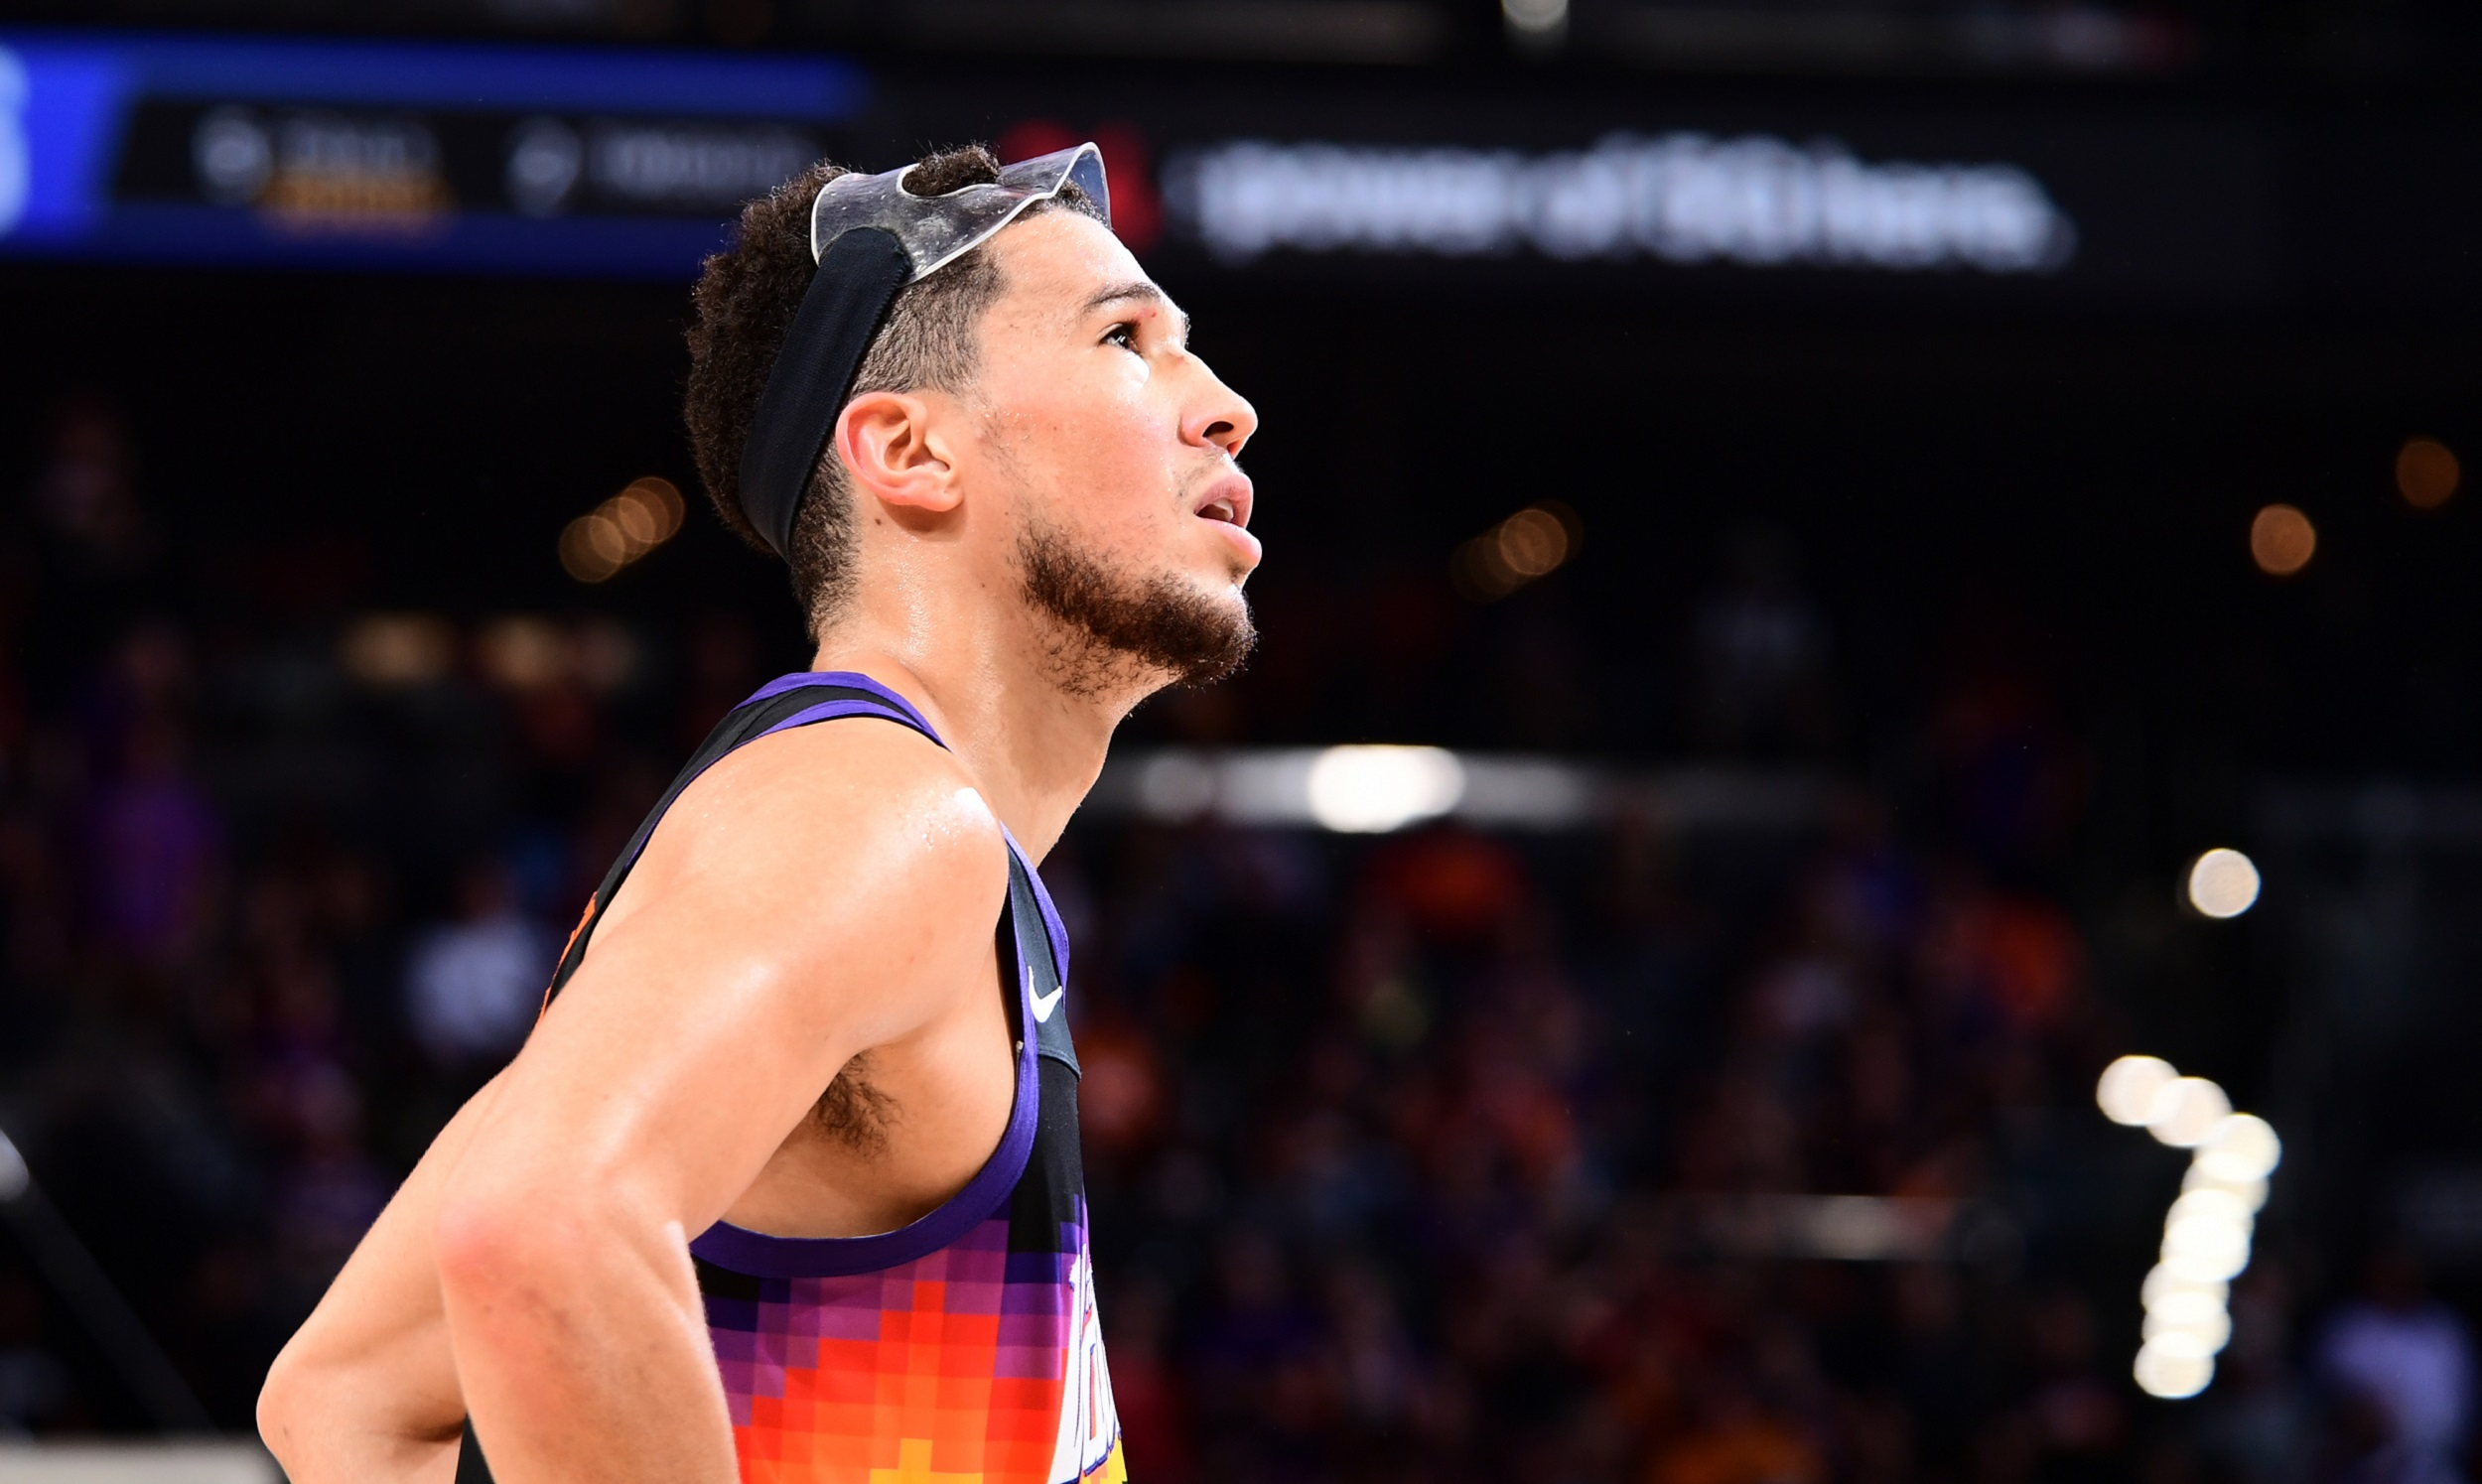 Phoenix Suns seek urgency to finish off LA Clippers in Game 6